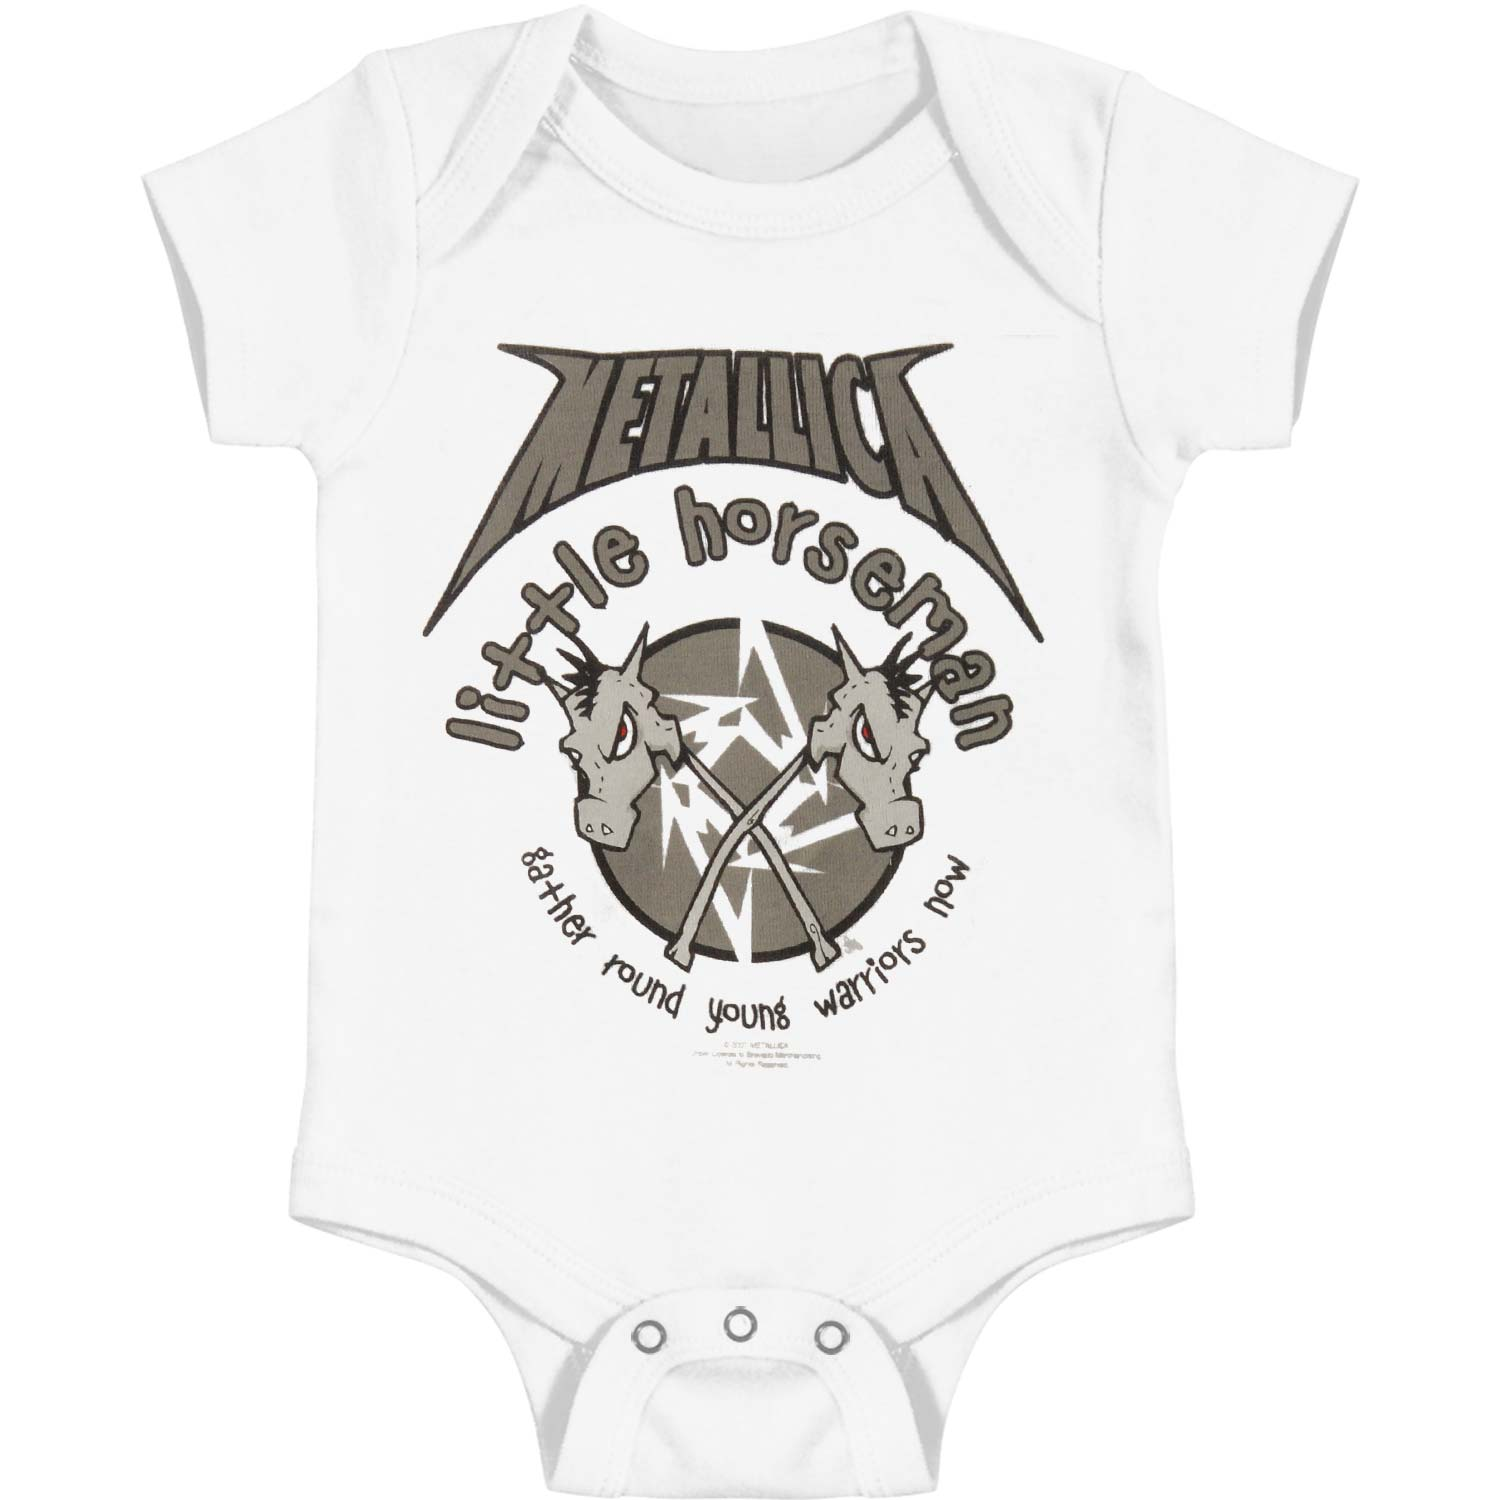 Rock Baby Clothes & Baby Rock T Shirts Clothing Kiditude Page 3